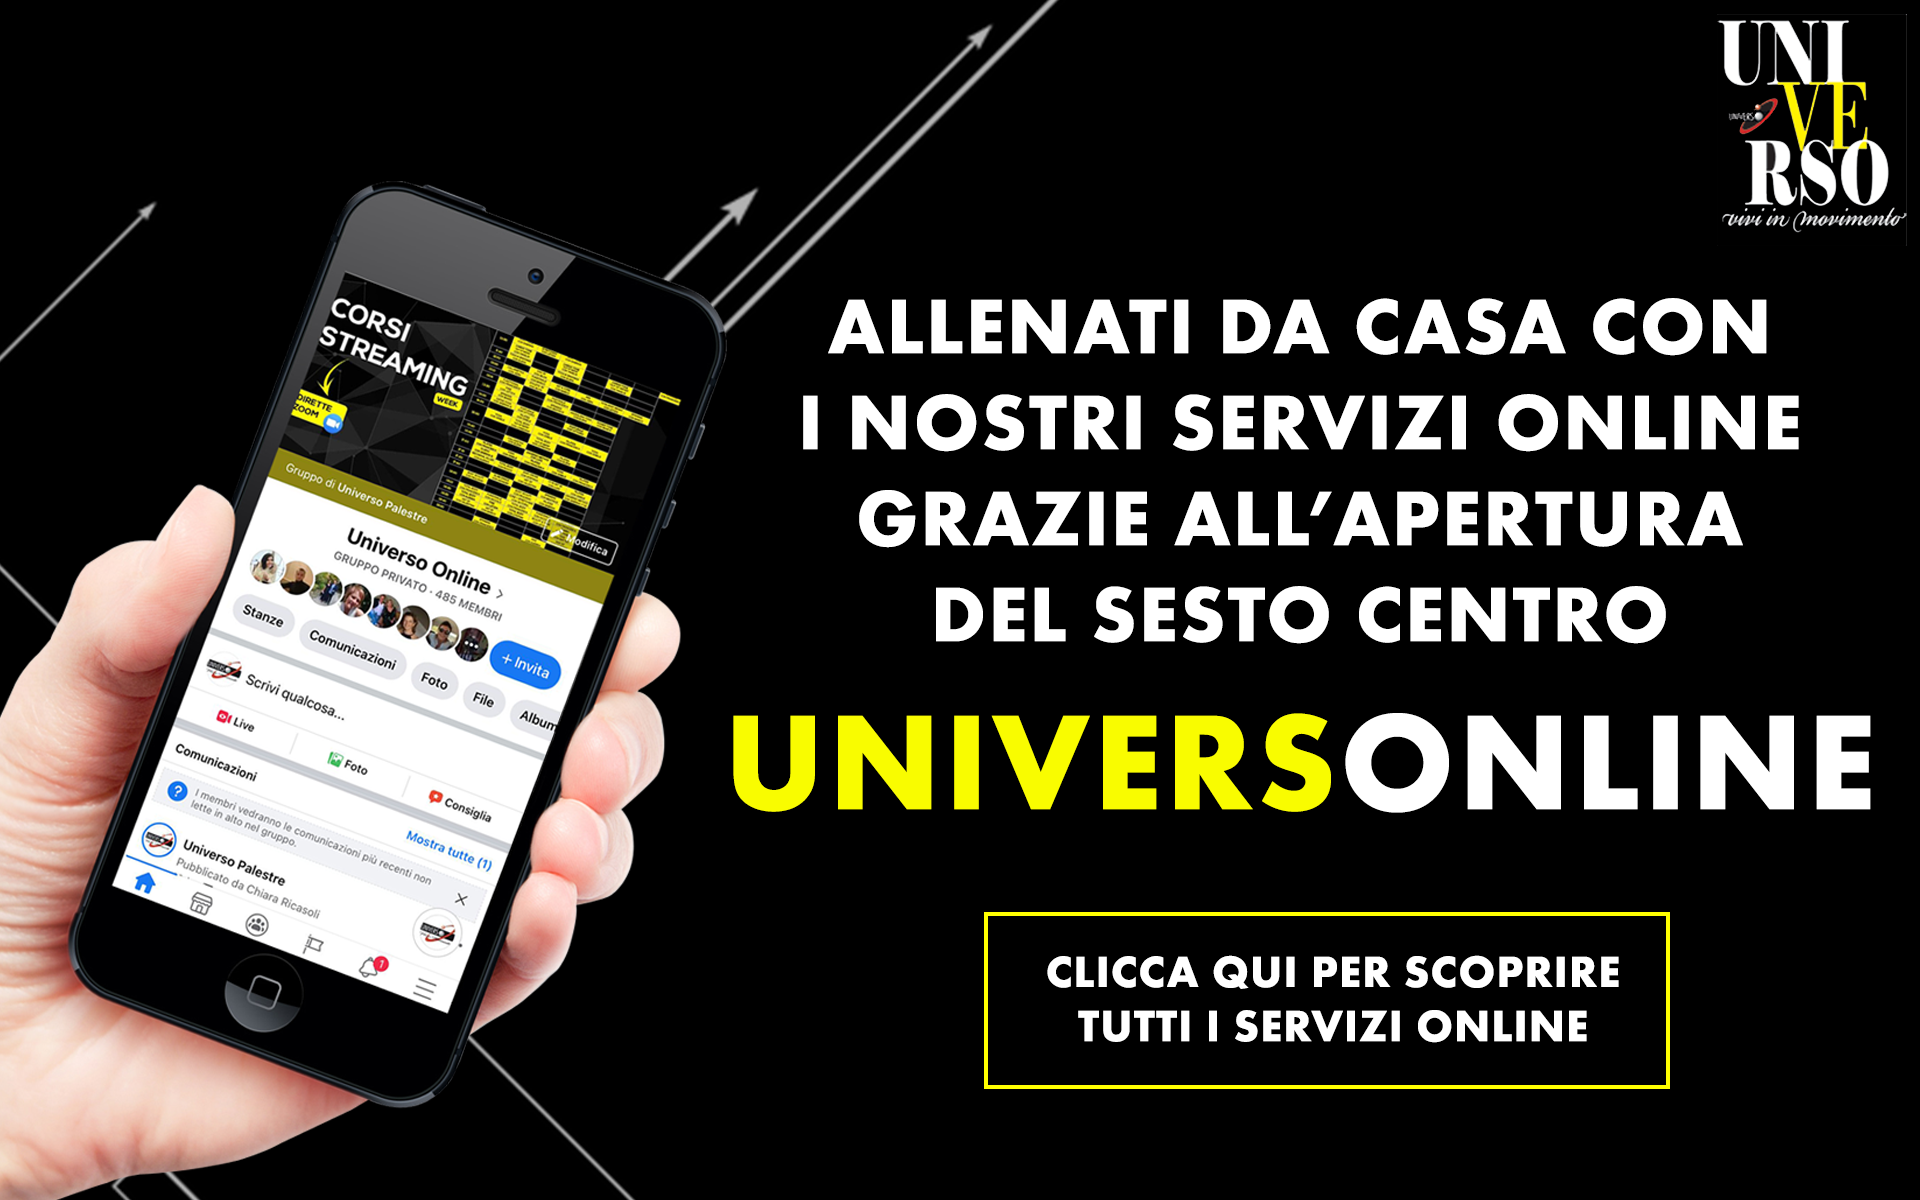 immagine pop up universonline